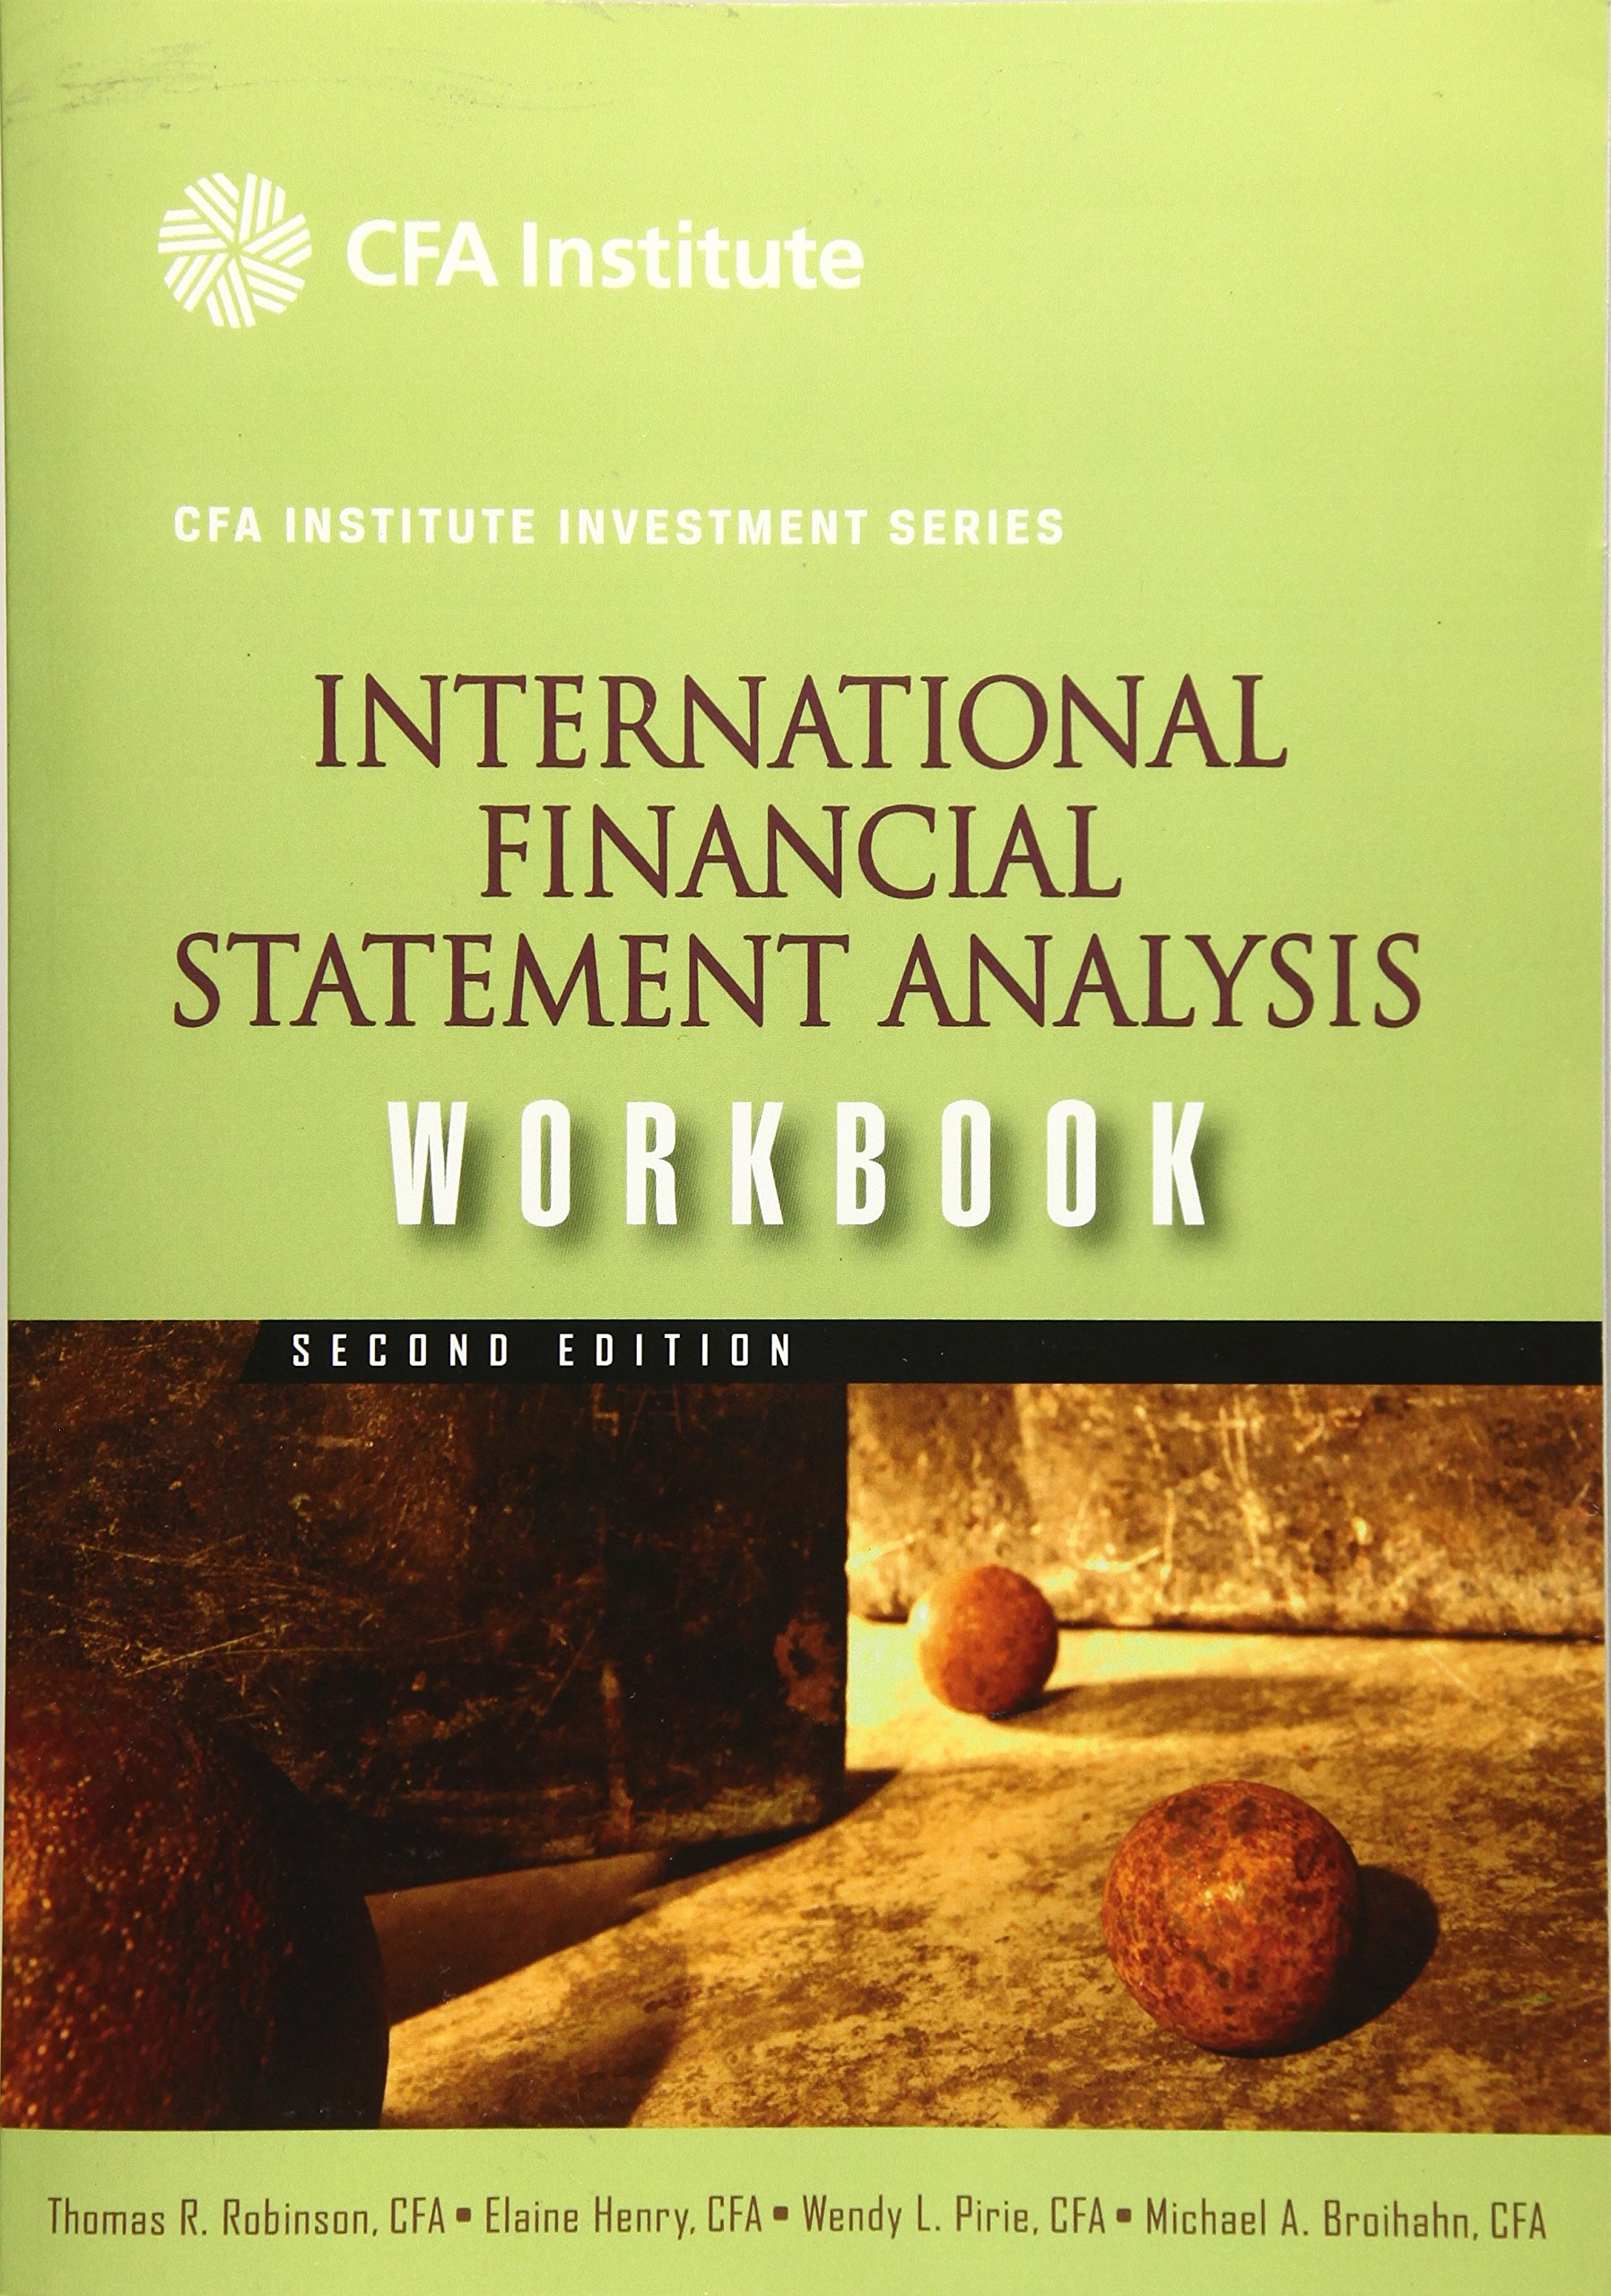 International Financial Statement Analysis Workbook  CFA Institute Investment Series